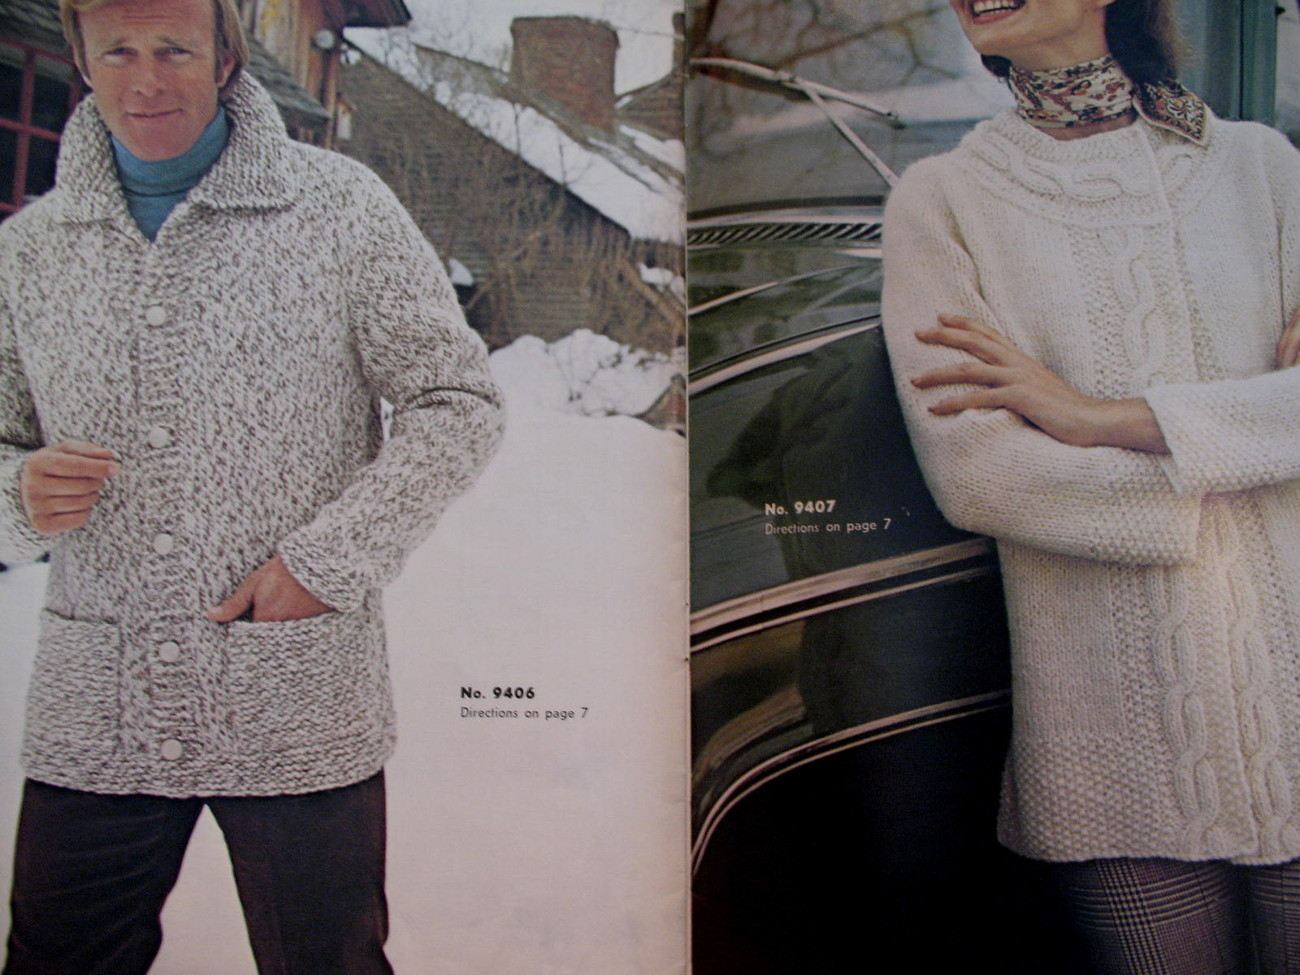 Reynolds Lopi Wool Sweater Wrap Jacket Knitting Pattern etc image 4